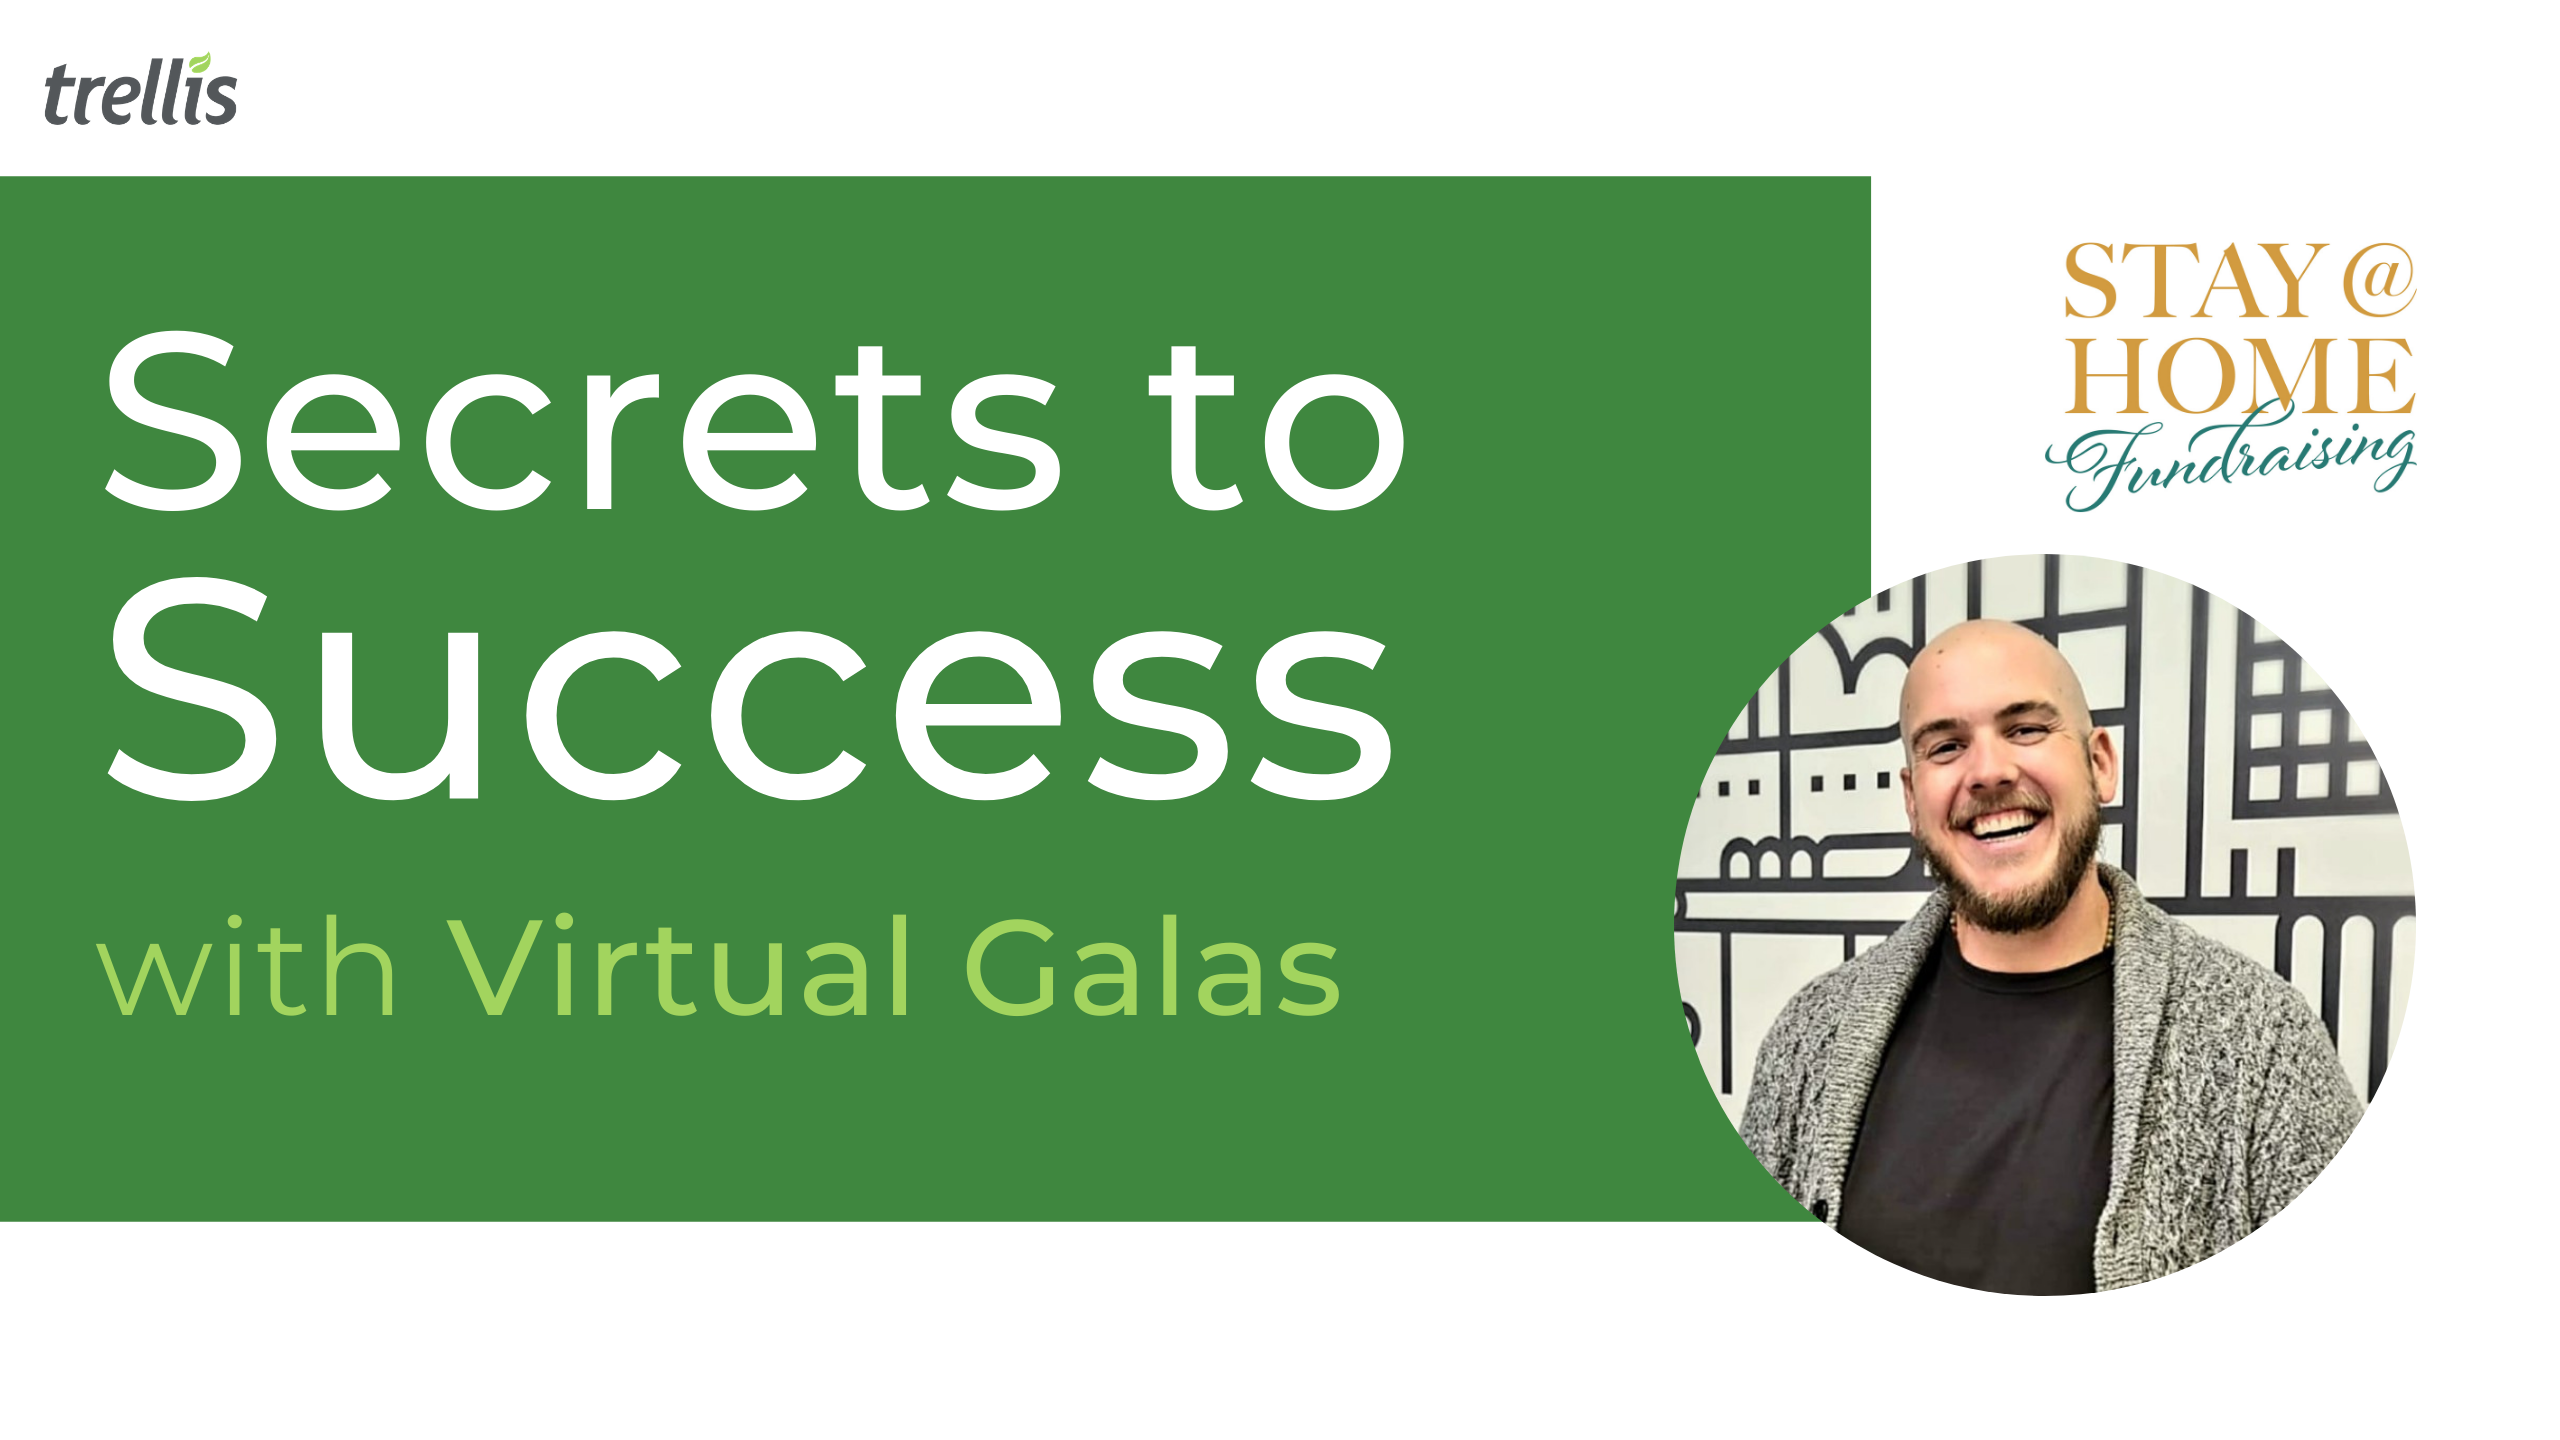 Secrets to Success With Virtual Galas in 2021 - Trellis Webinar Series